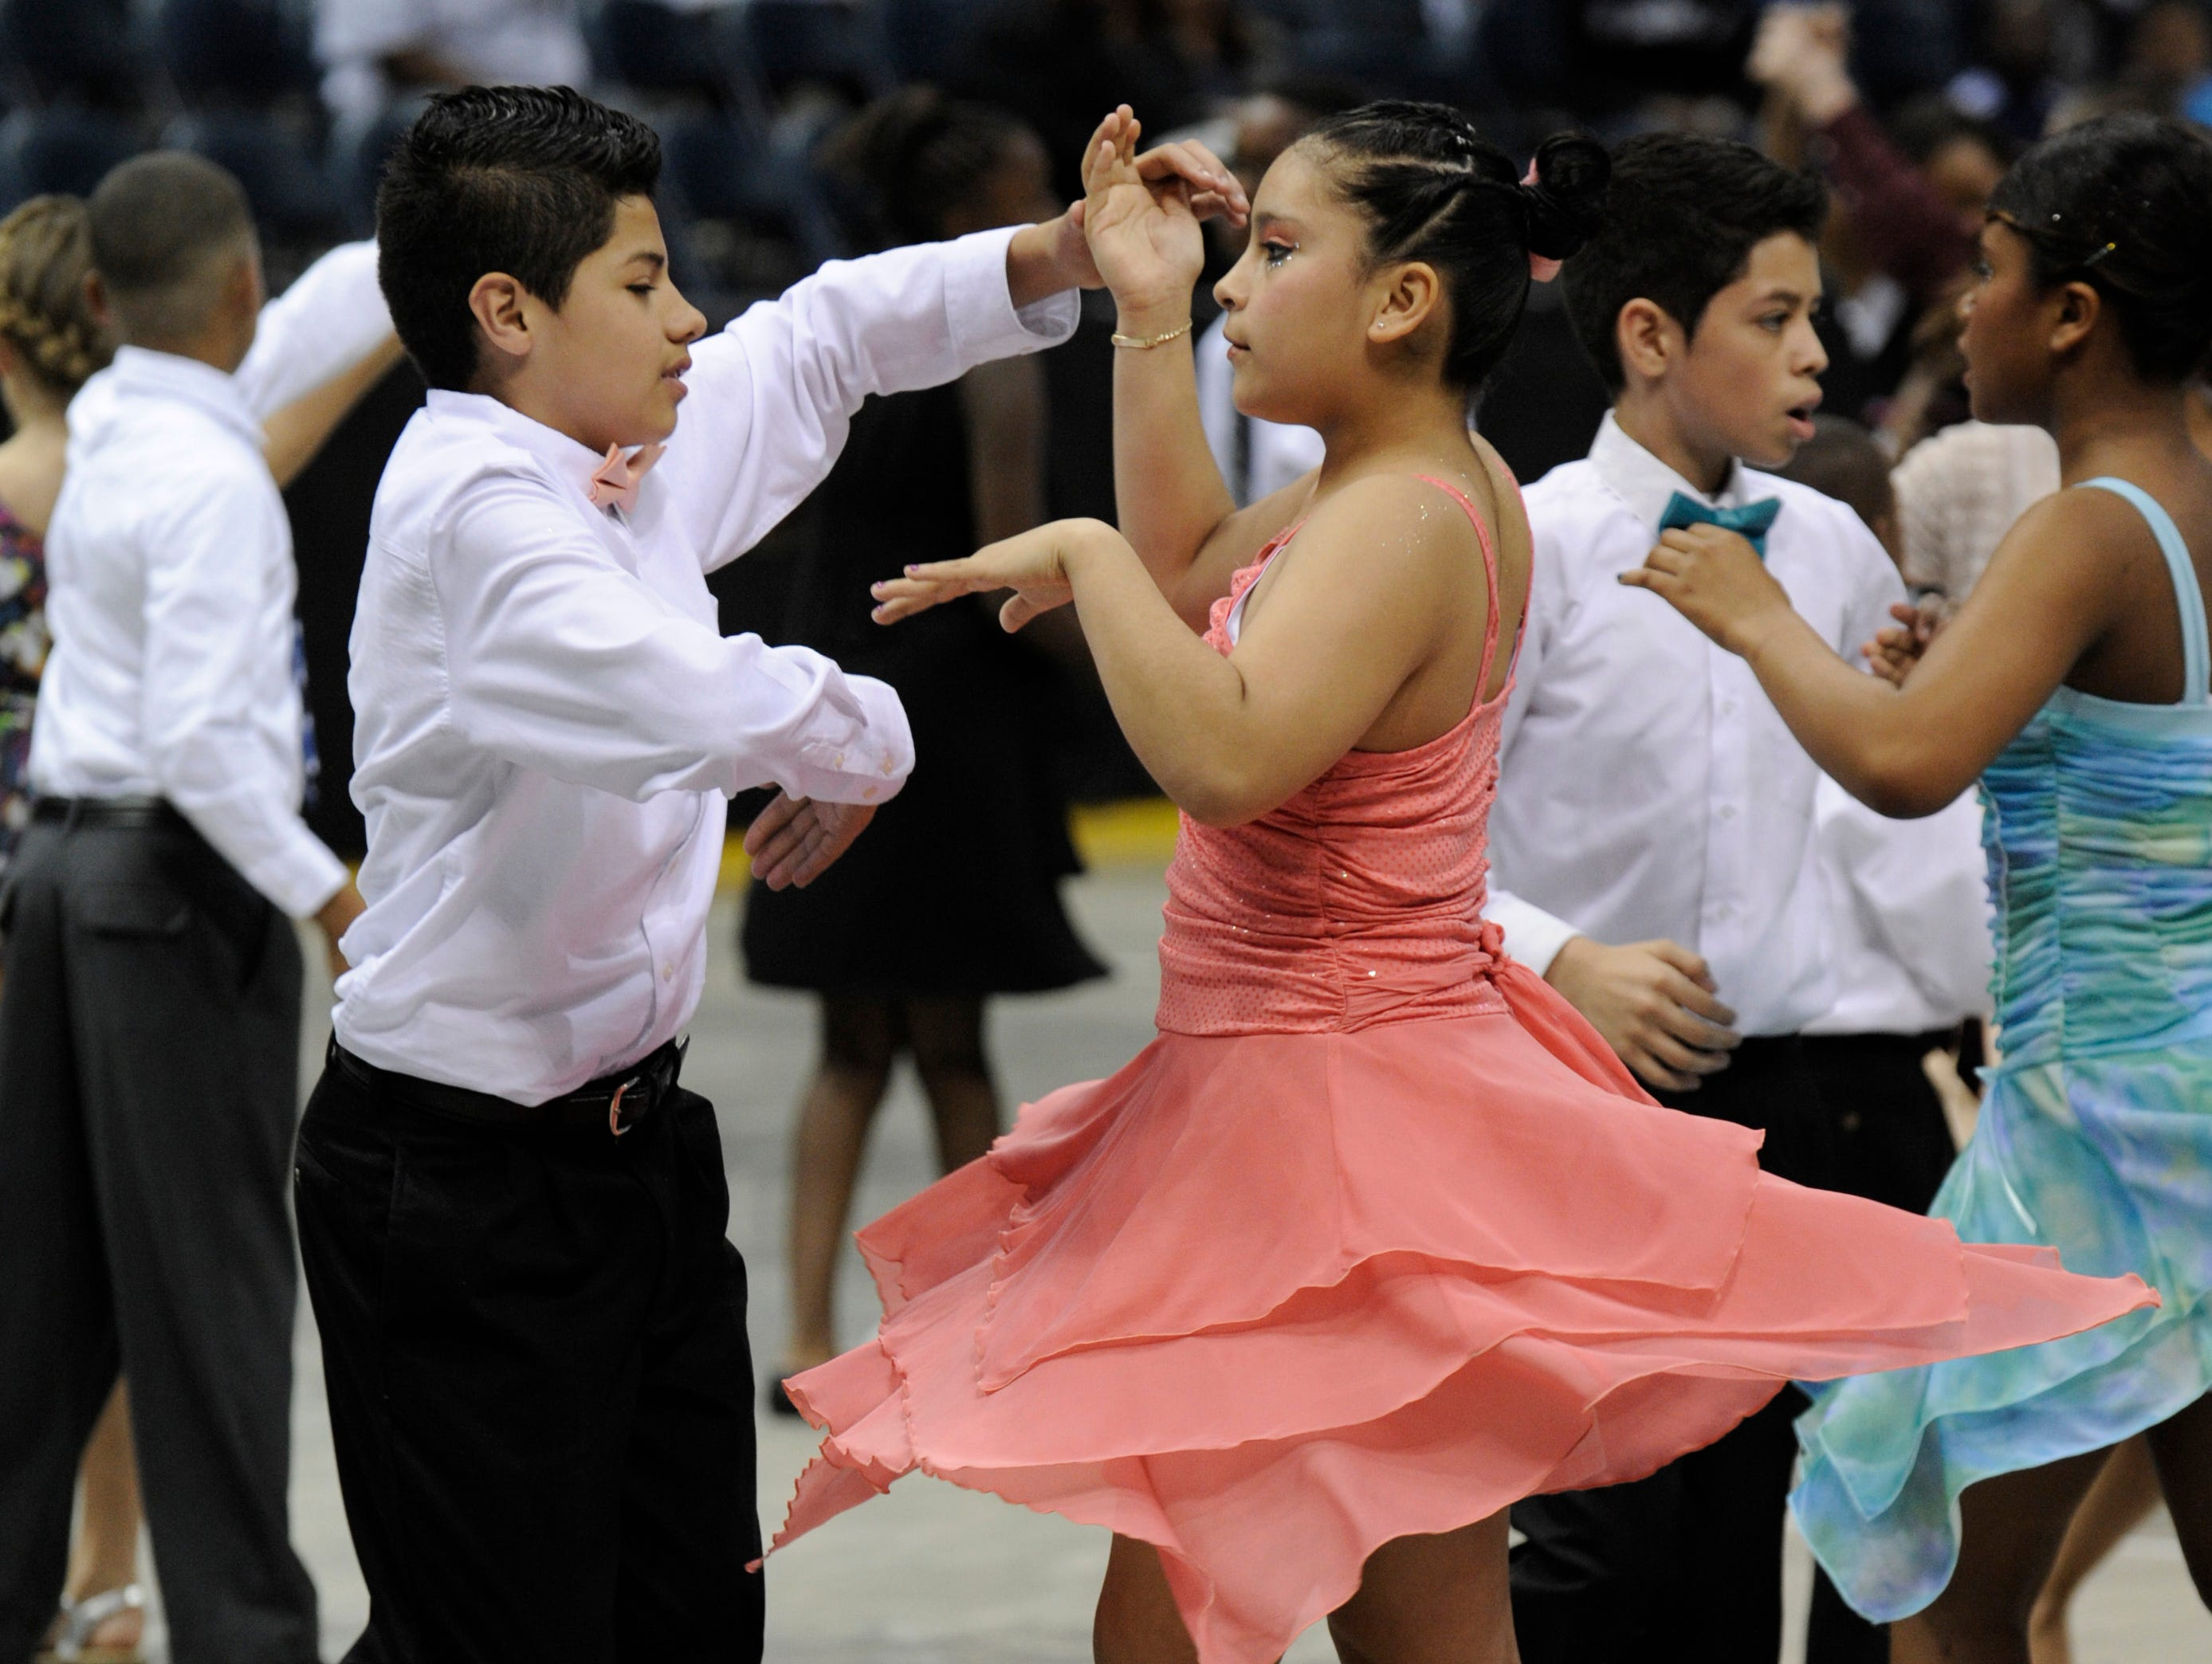 2012: Antonio Rodriguez and Anahi Ortega from Escuela Vieau school dance the samba on the Bradley Center floor during the Danceworks Mad Hot Ballroom and Tap competition.